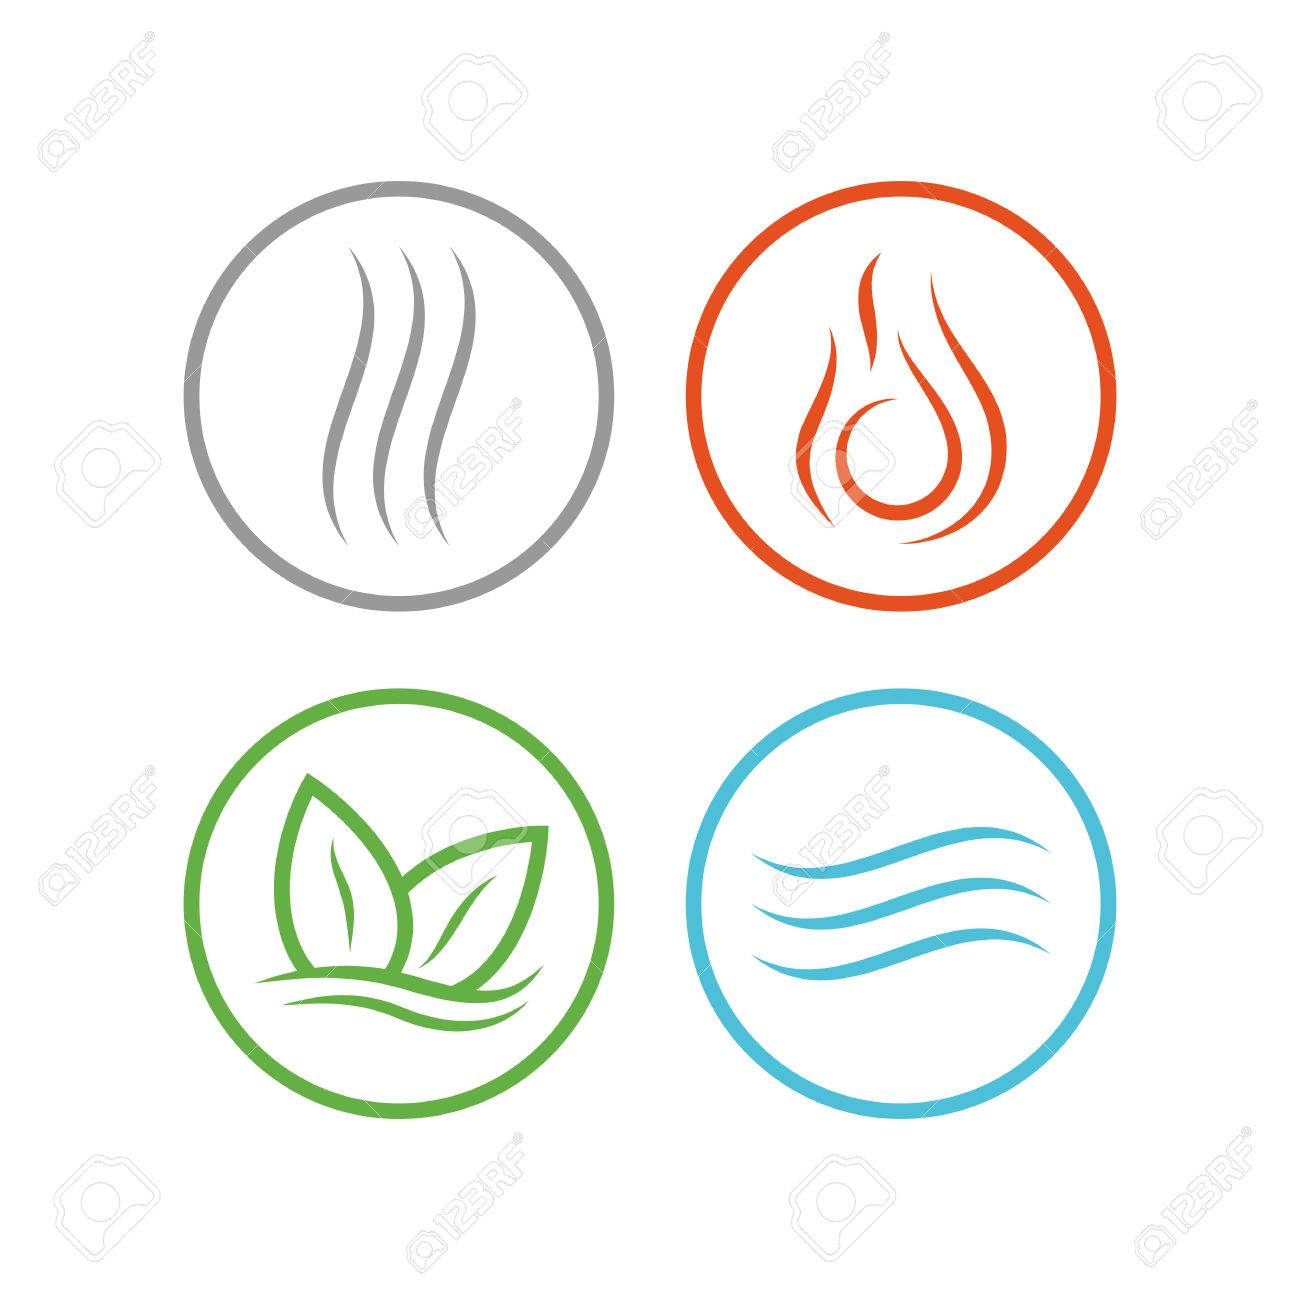 Four Forces Elements Water Fire Earth Air The Symbols Of